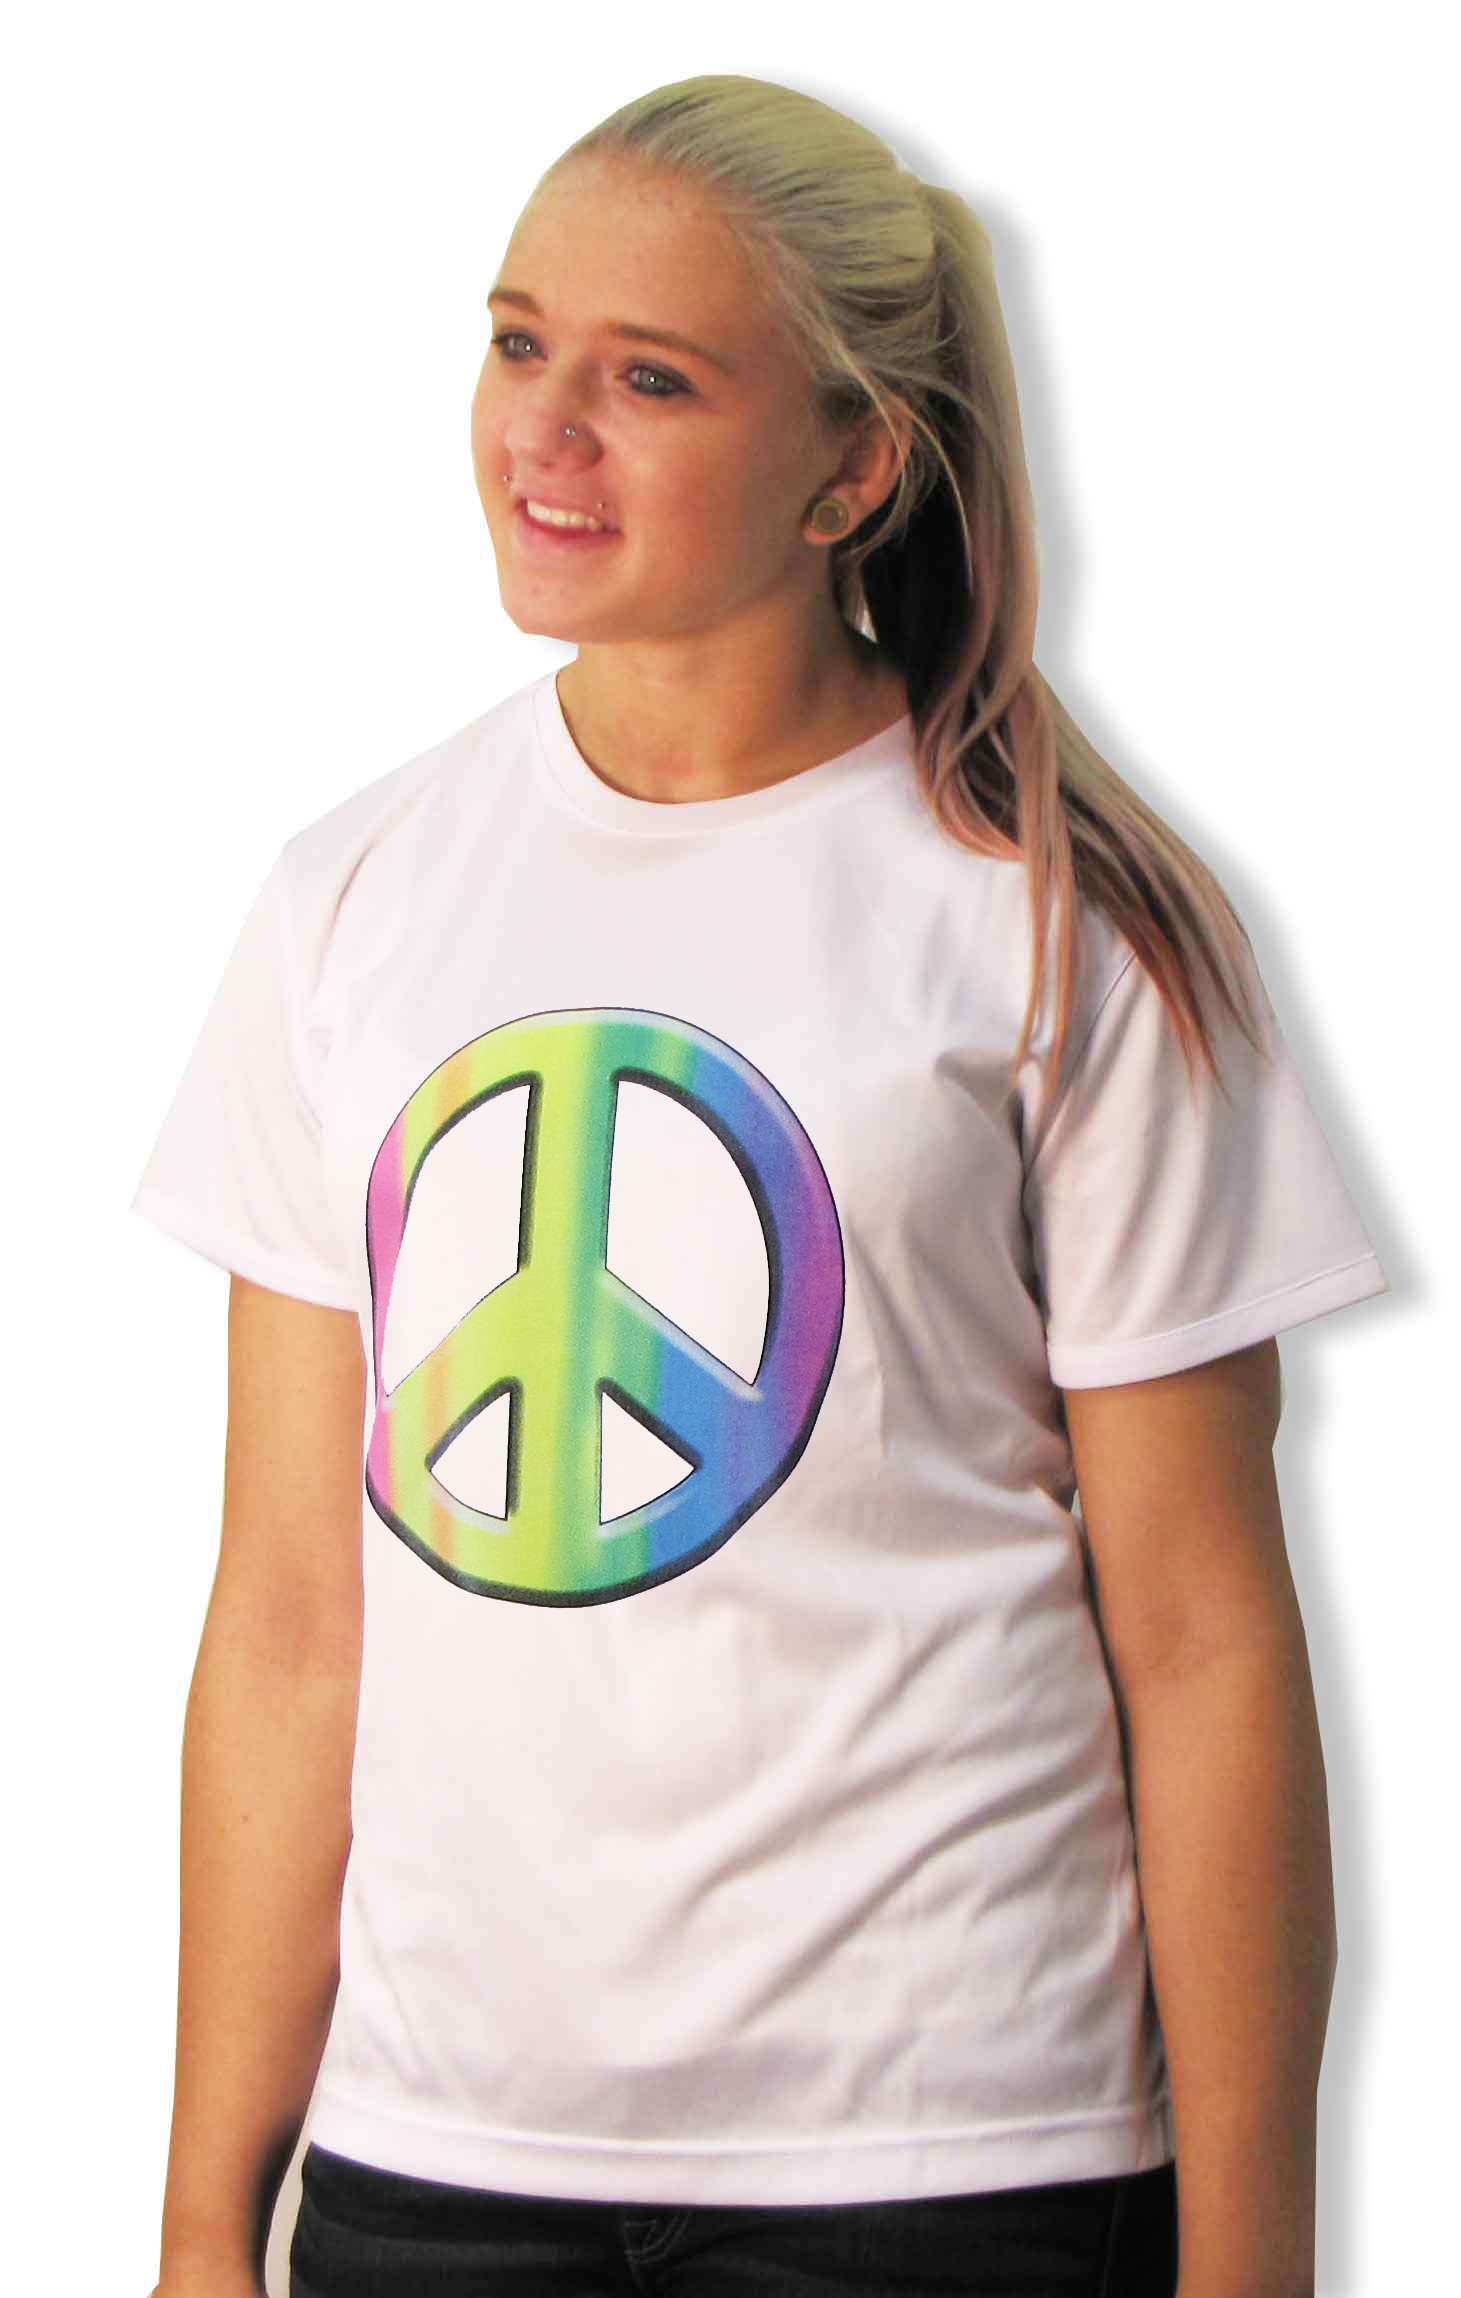 Peace Sign shirt for girls and wome by Code Four Athletics